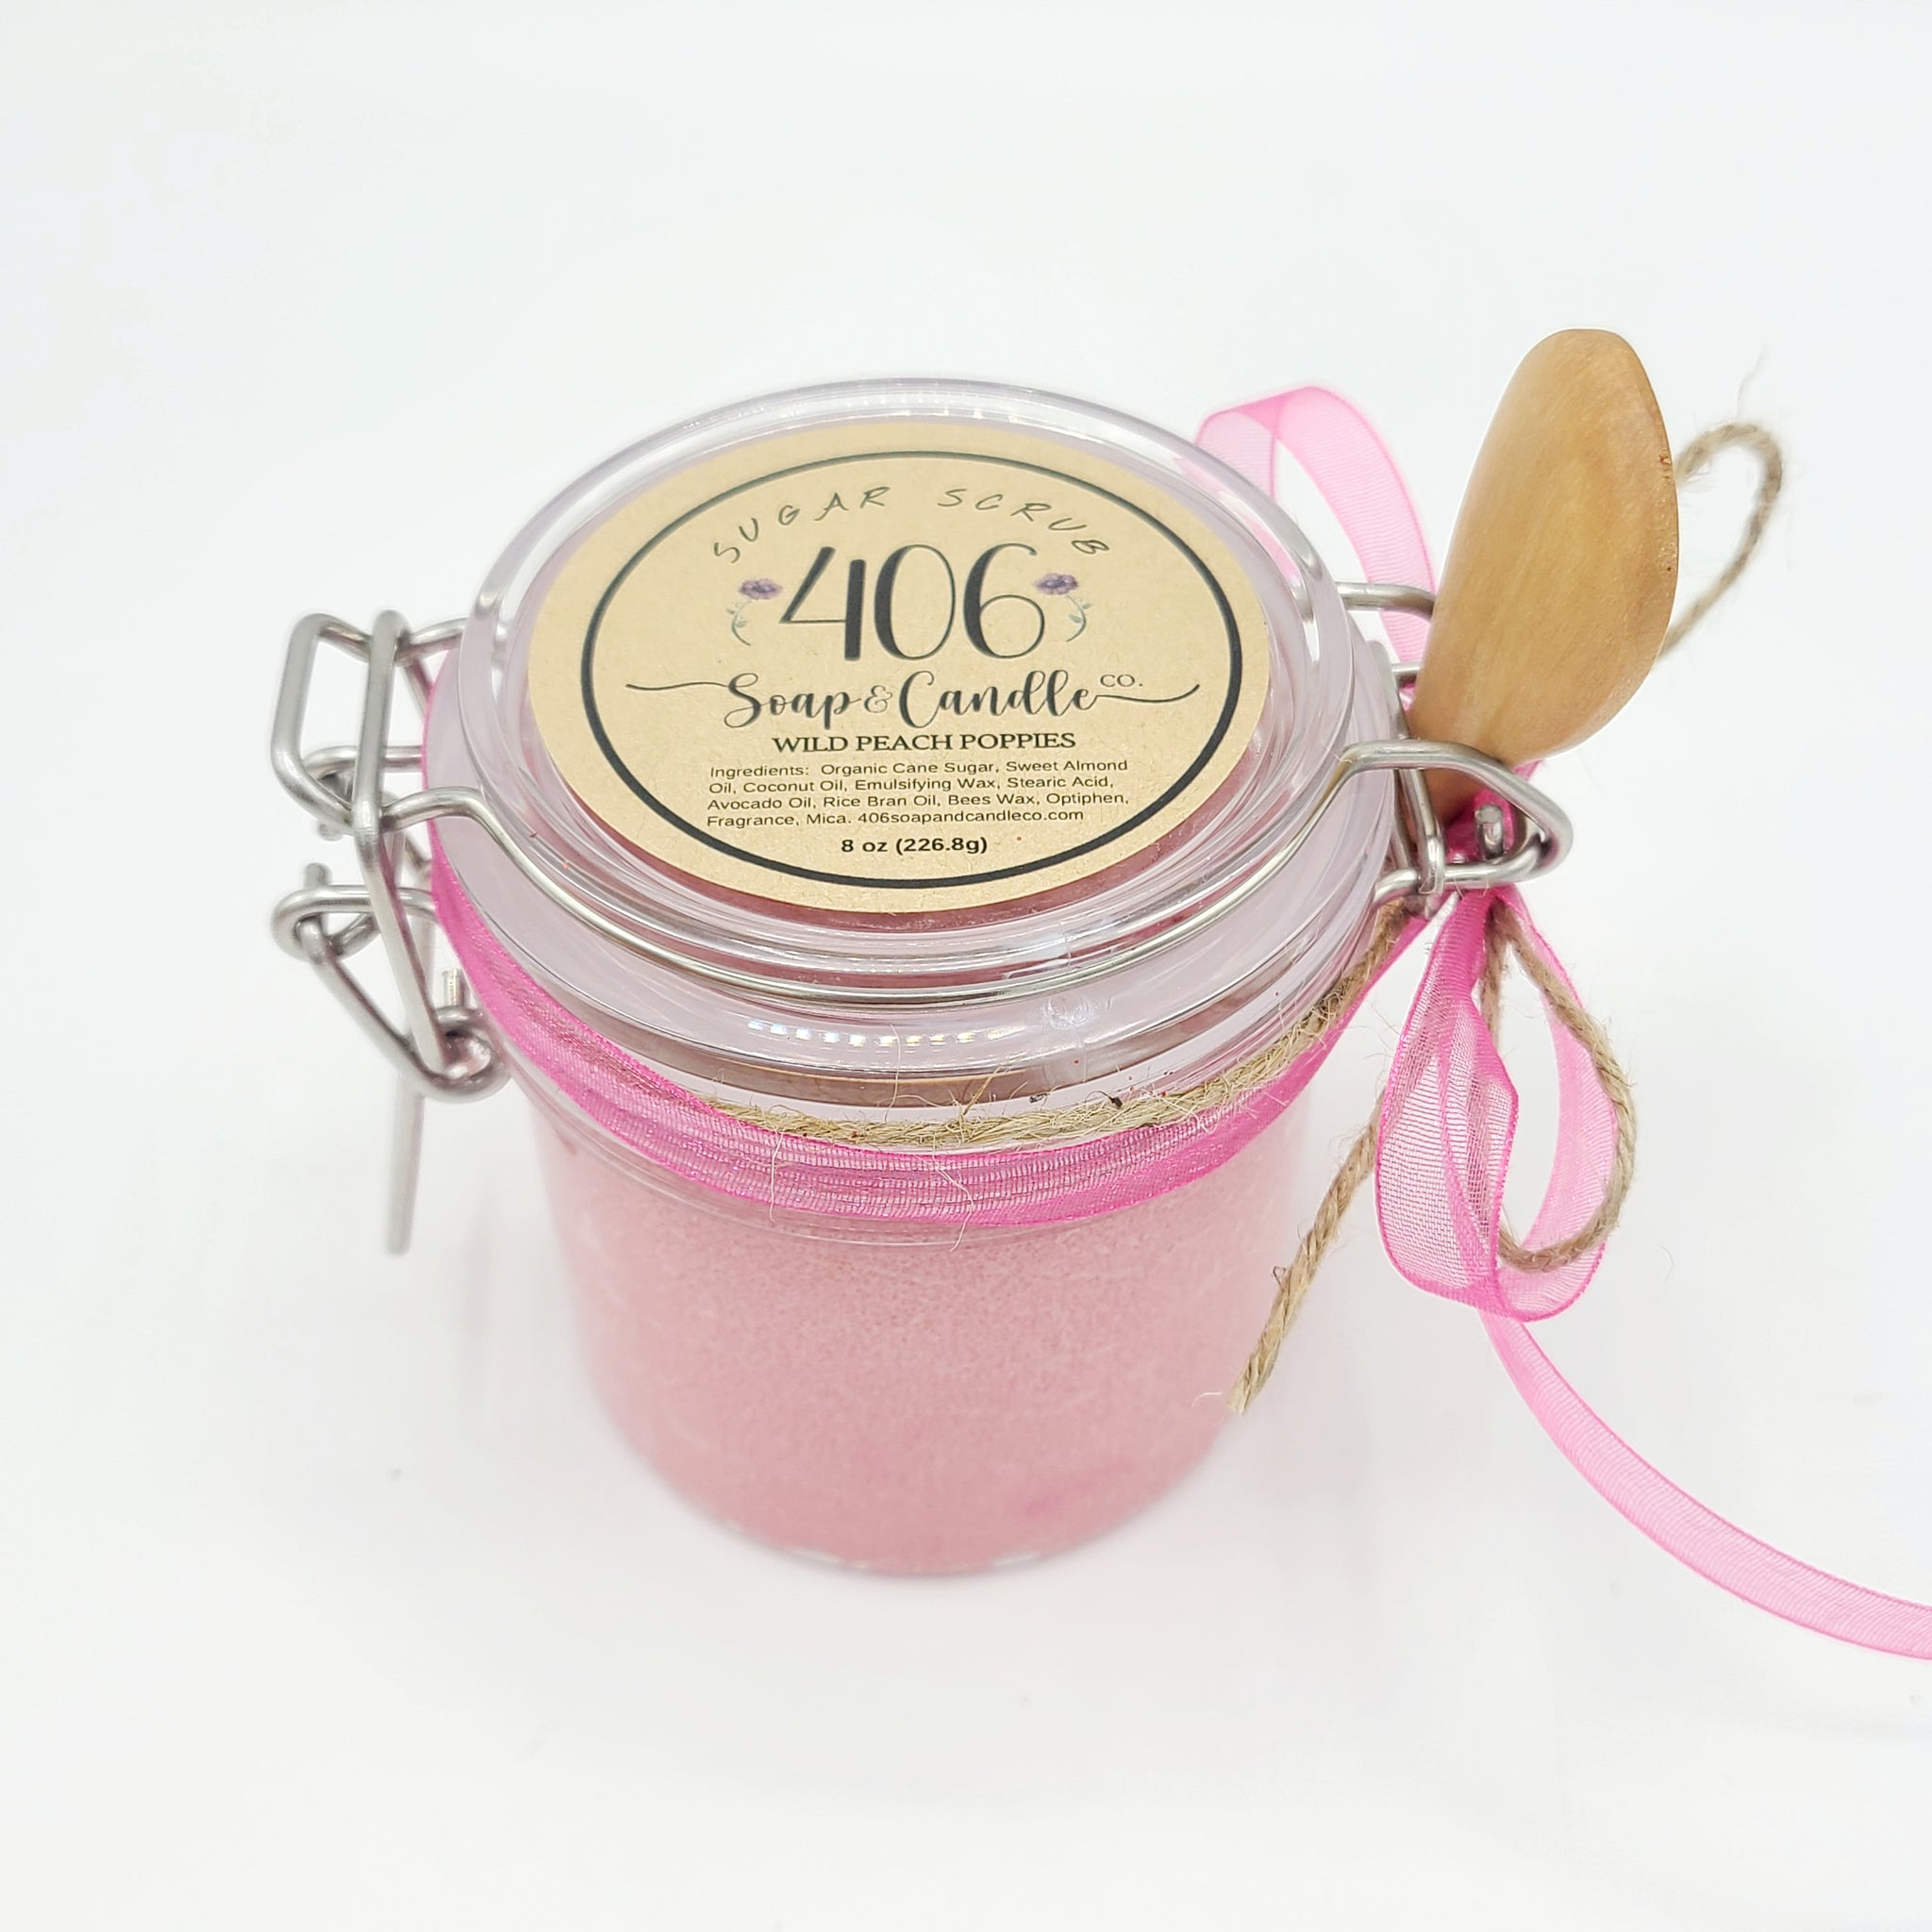 Wild Peach Poppies Emulsified Sugar Scrub